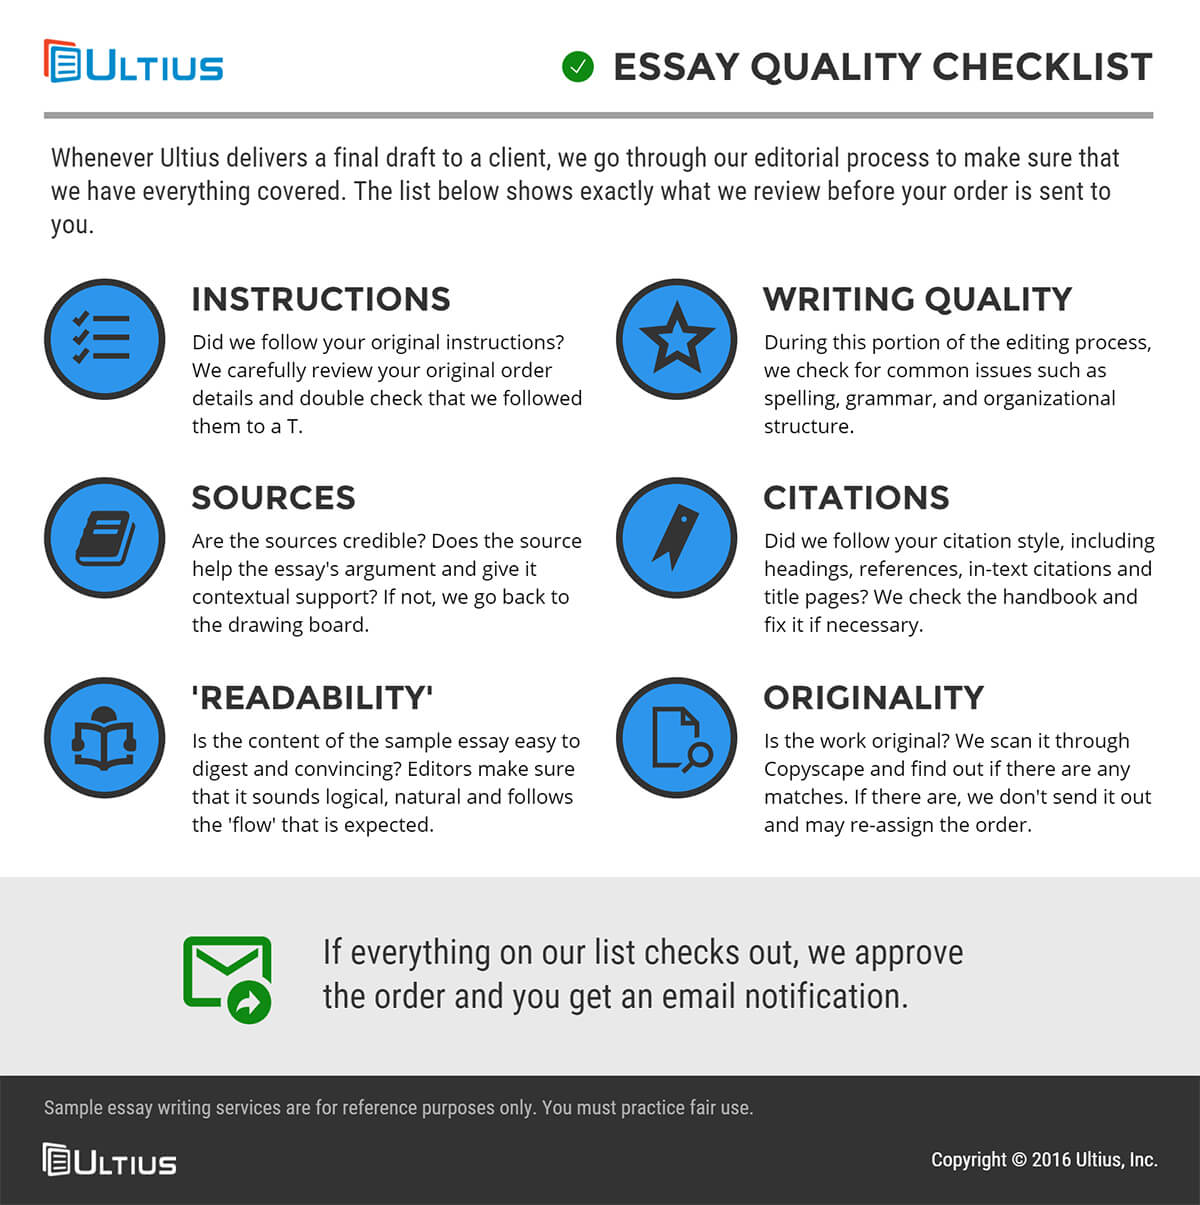 014 Essay Example Purchased Quality Checklist Dreaded Persuasive Structure Higher English Outline 5th Grade Definition And Examples Full